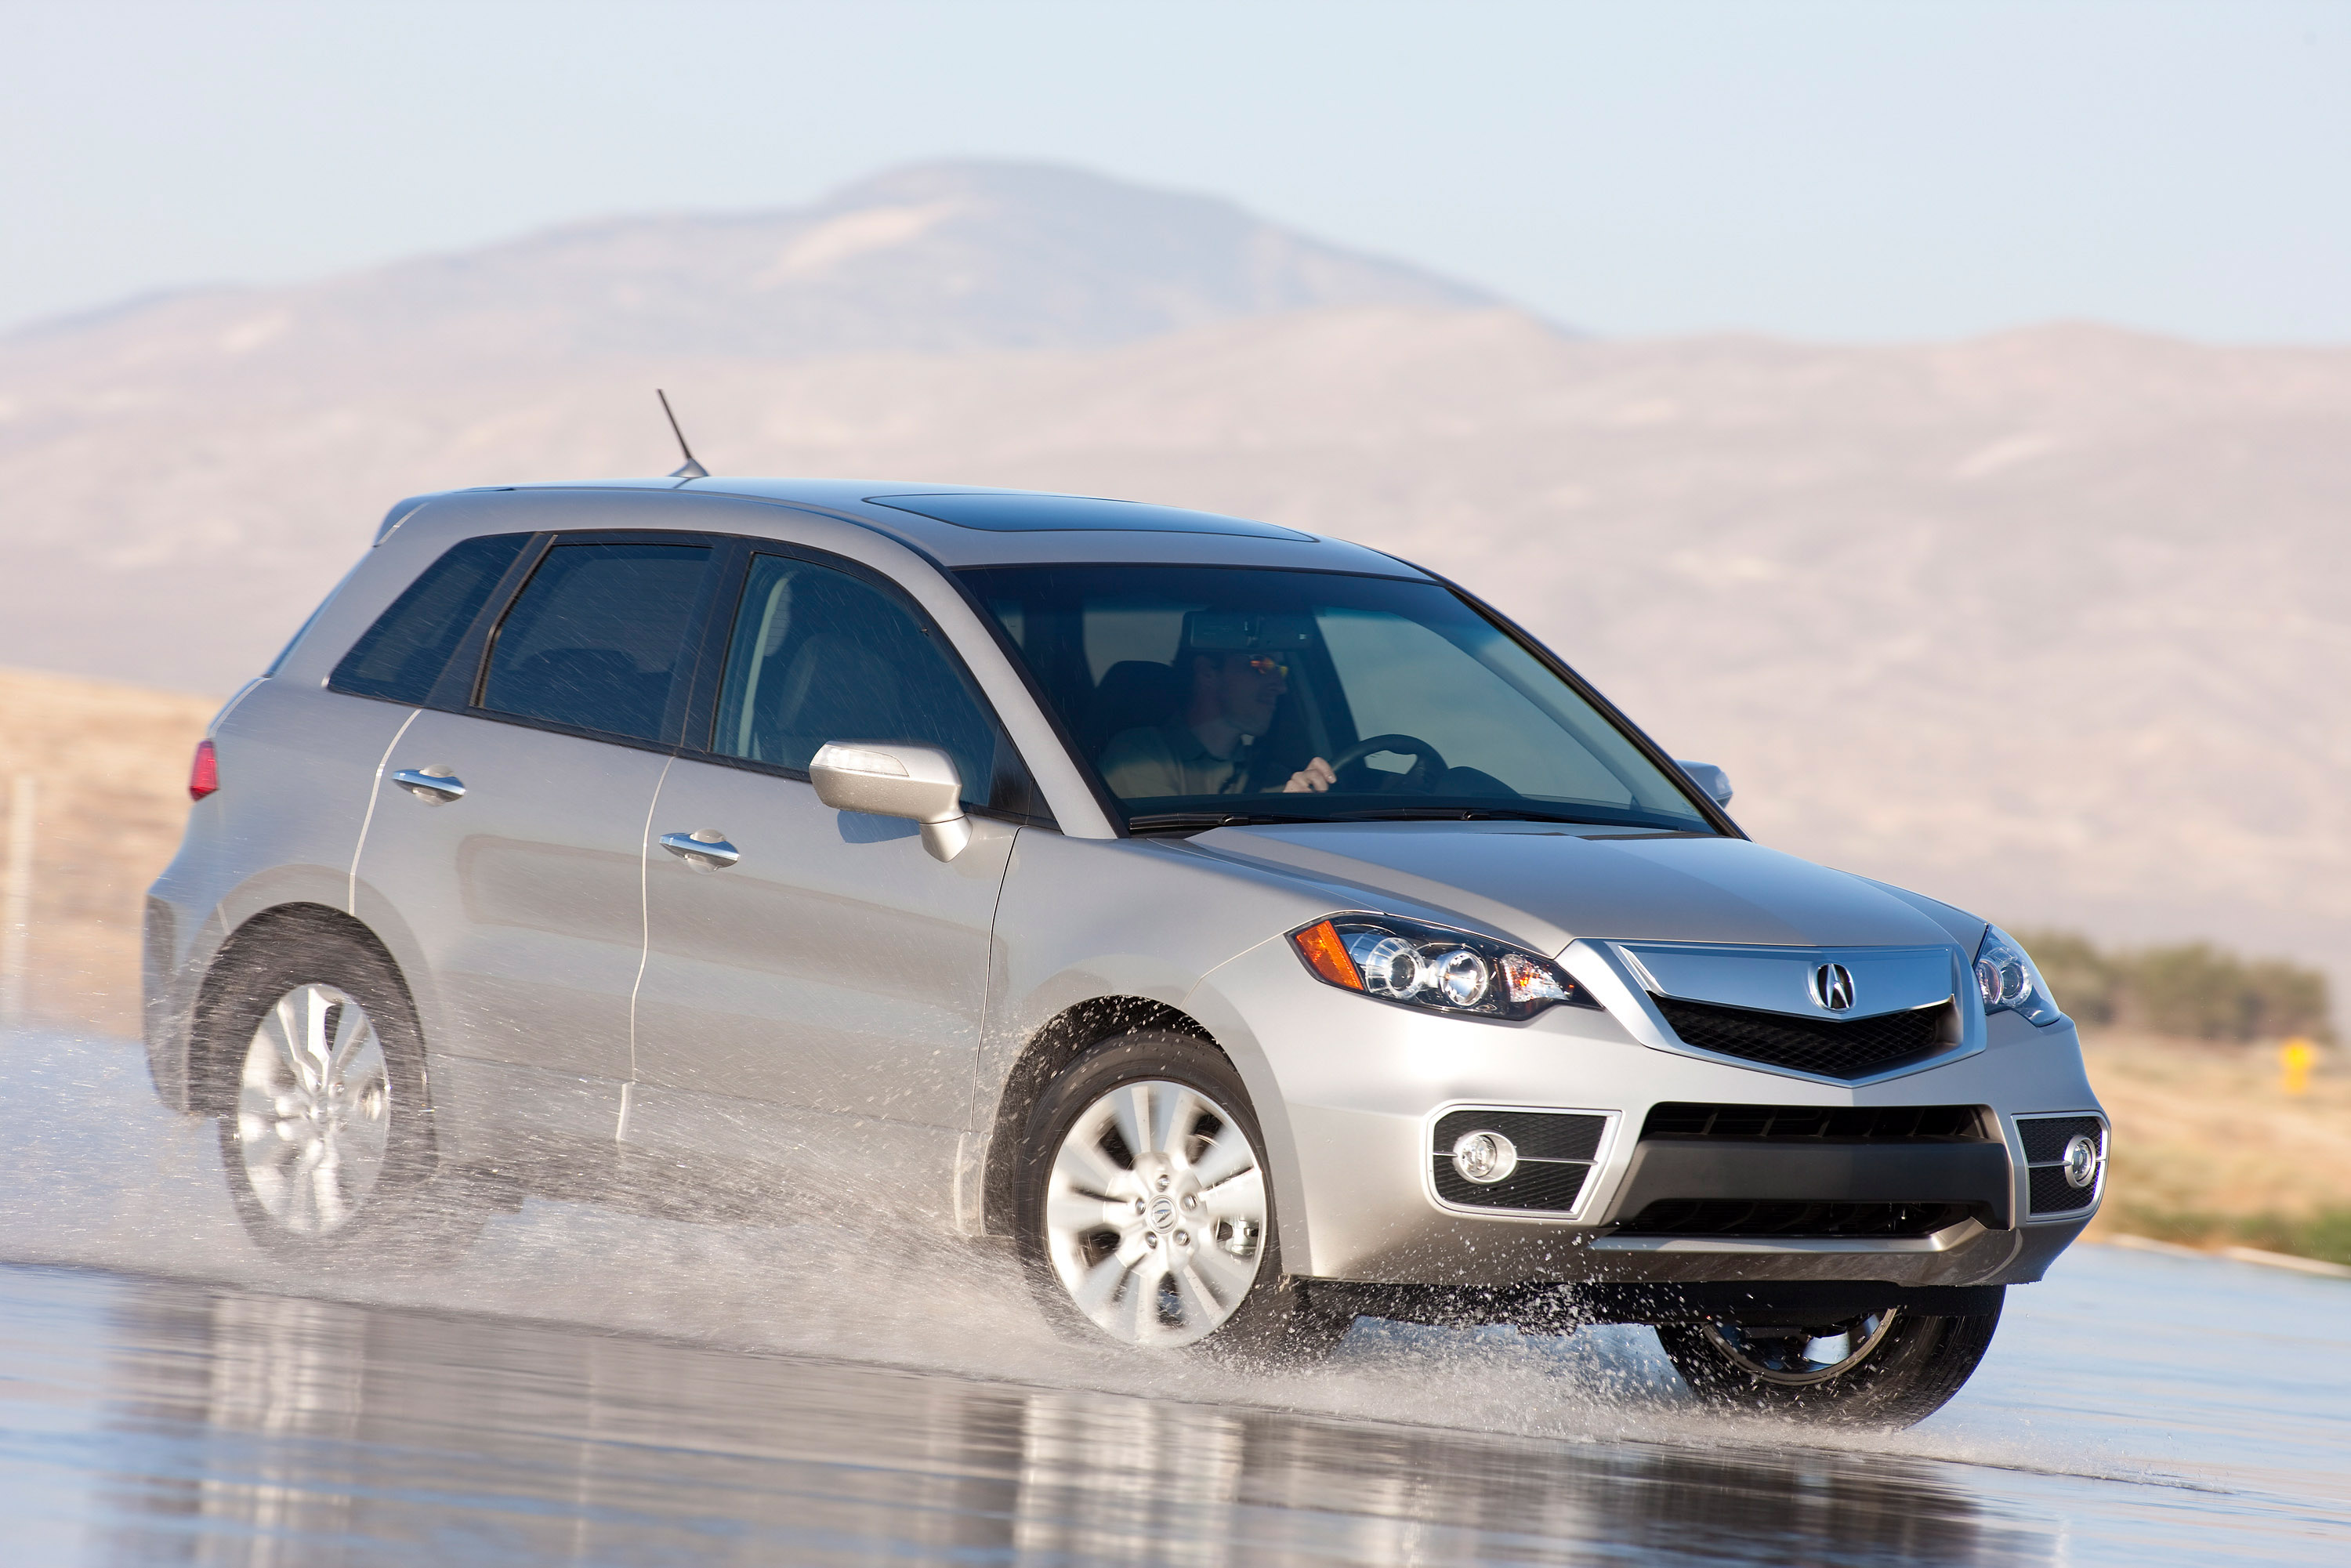 acura rdx turbocharged crossover full with upgrades and options for 2010. Black Bedroom Furniture Sets. Home Design Ideas